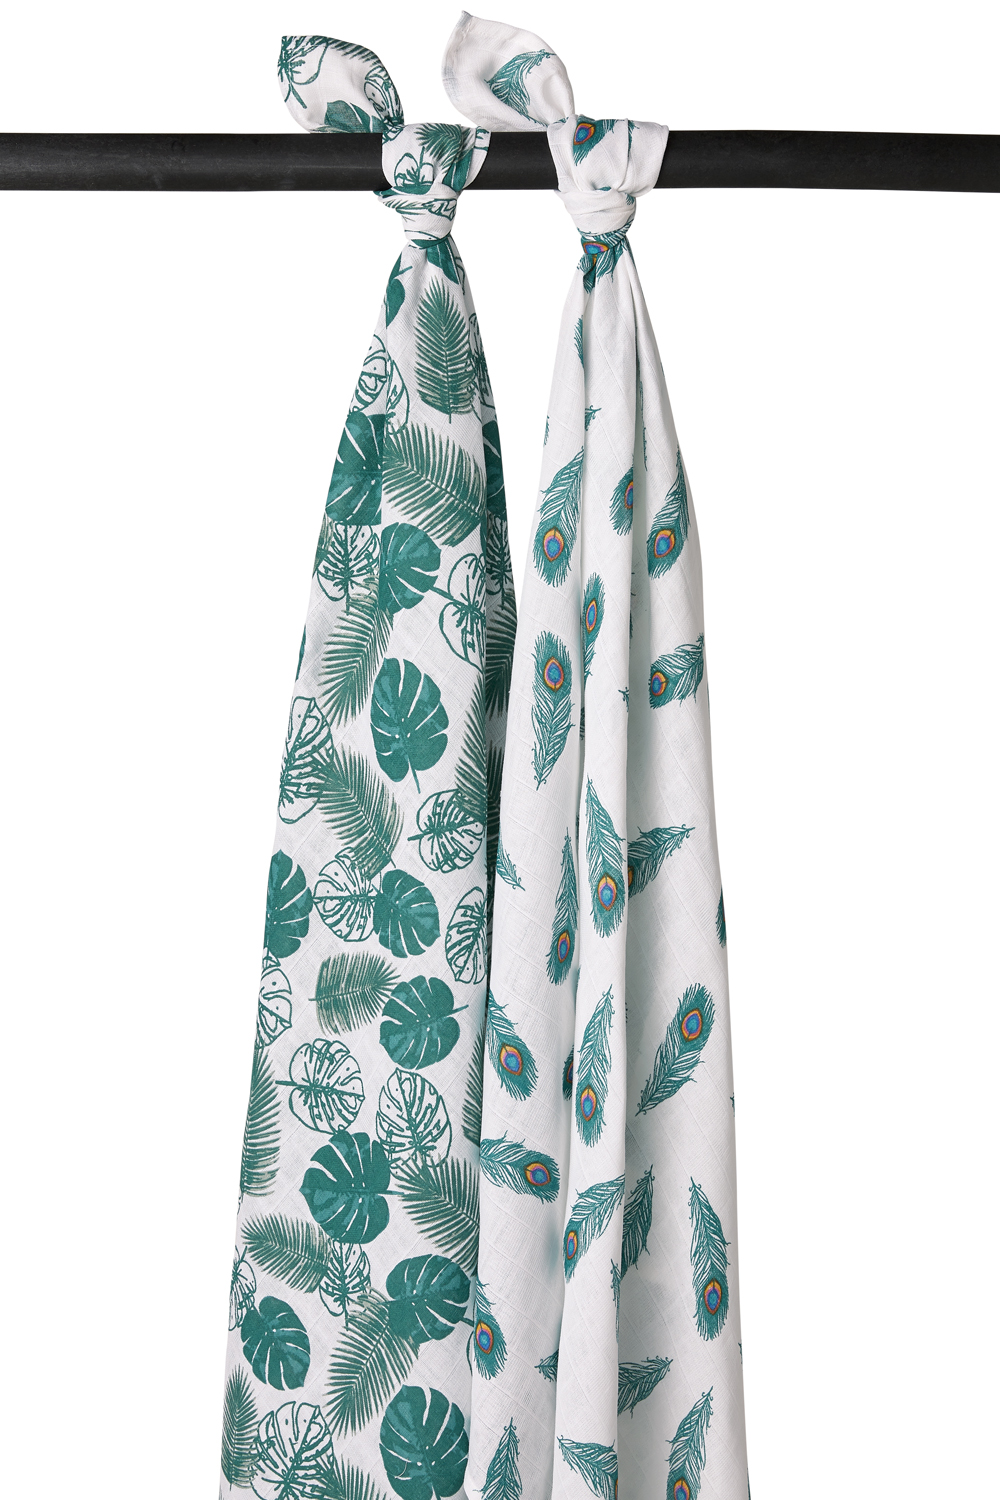 Hydrofiele Swaddles 2-pack Tropical leaves - Peacock Emerald Green - 120x120cm